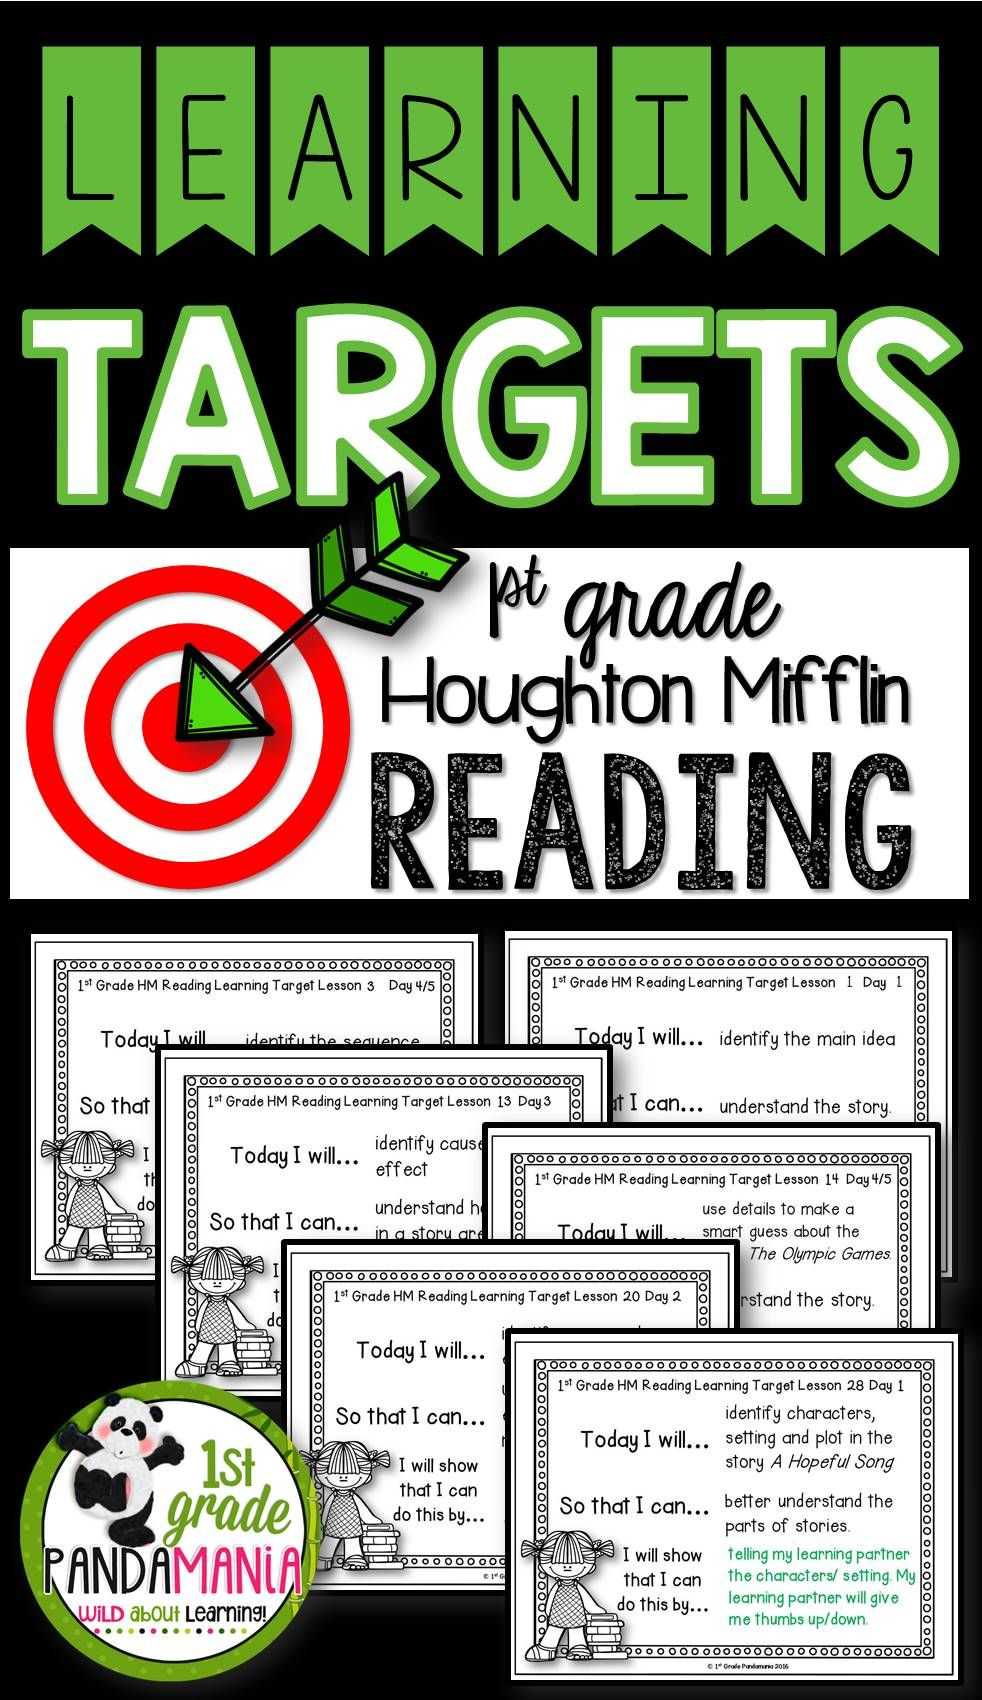 Learning Target Posters For The Year Houghton Mifflin Journeys 2011 Reading For 1st Grade Post Daily Learning Int Learning Targets Everyday Math Pearson Math [ 1700 x 982 Pixel ]